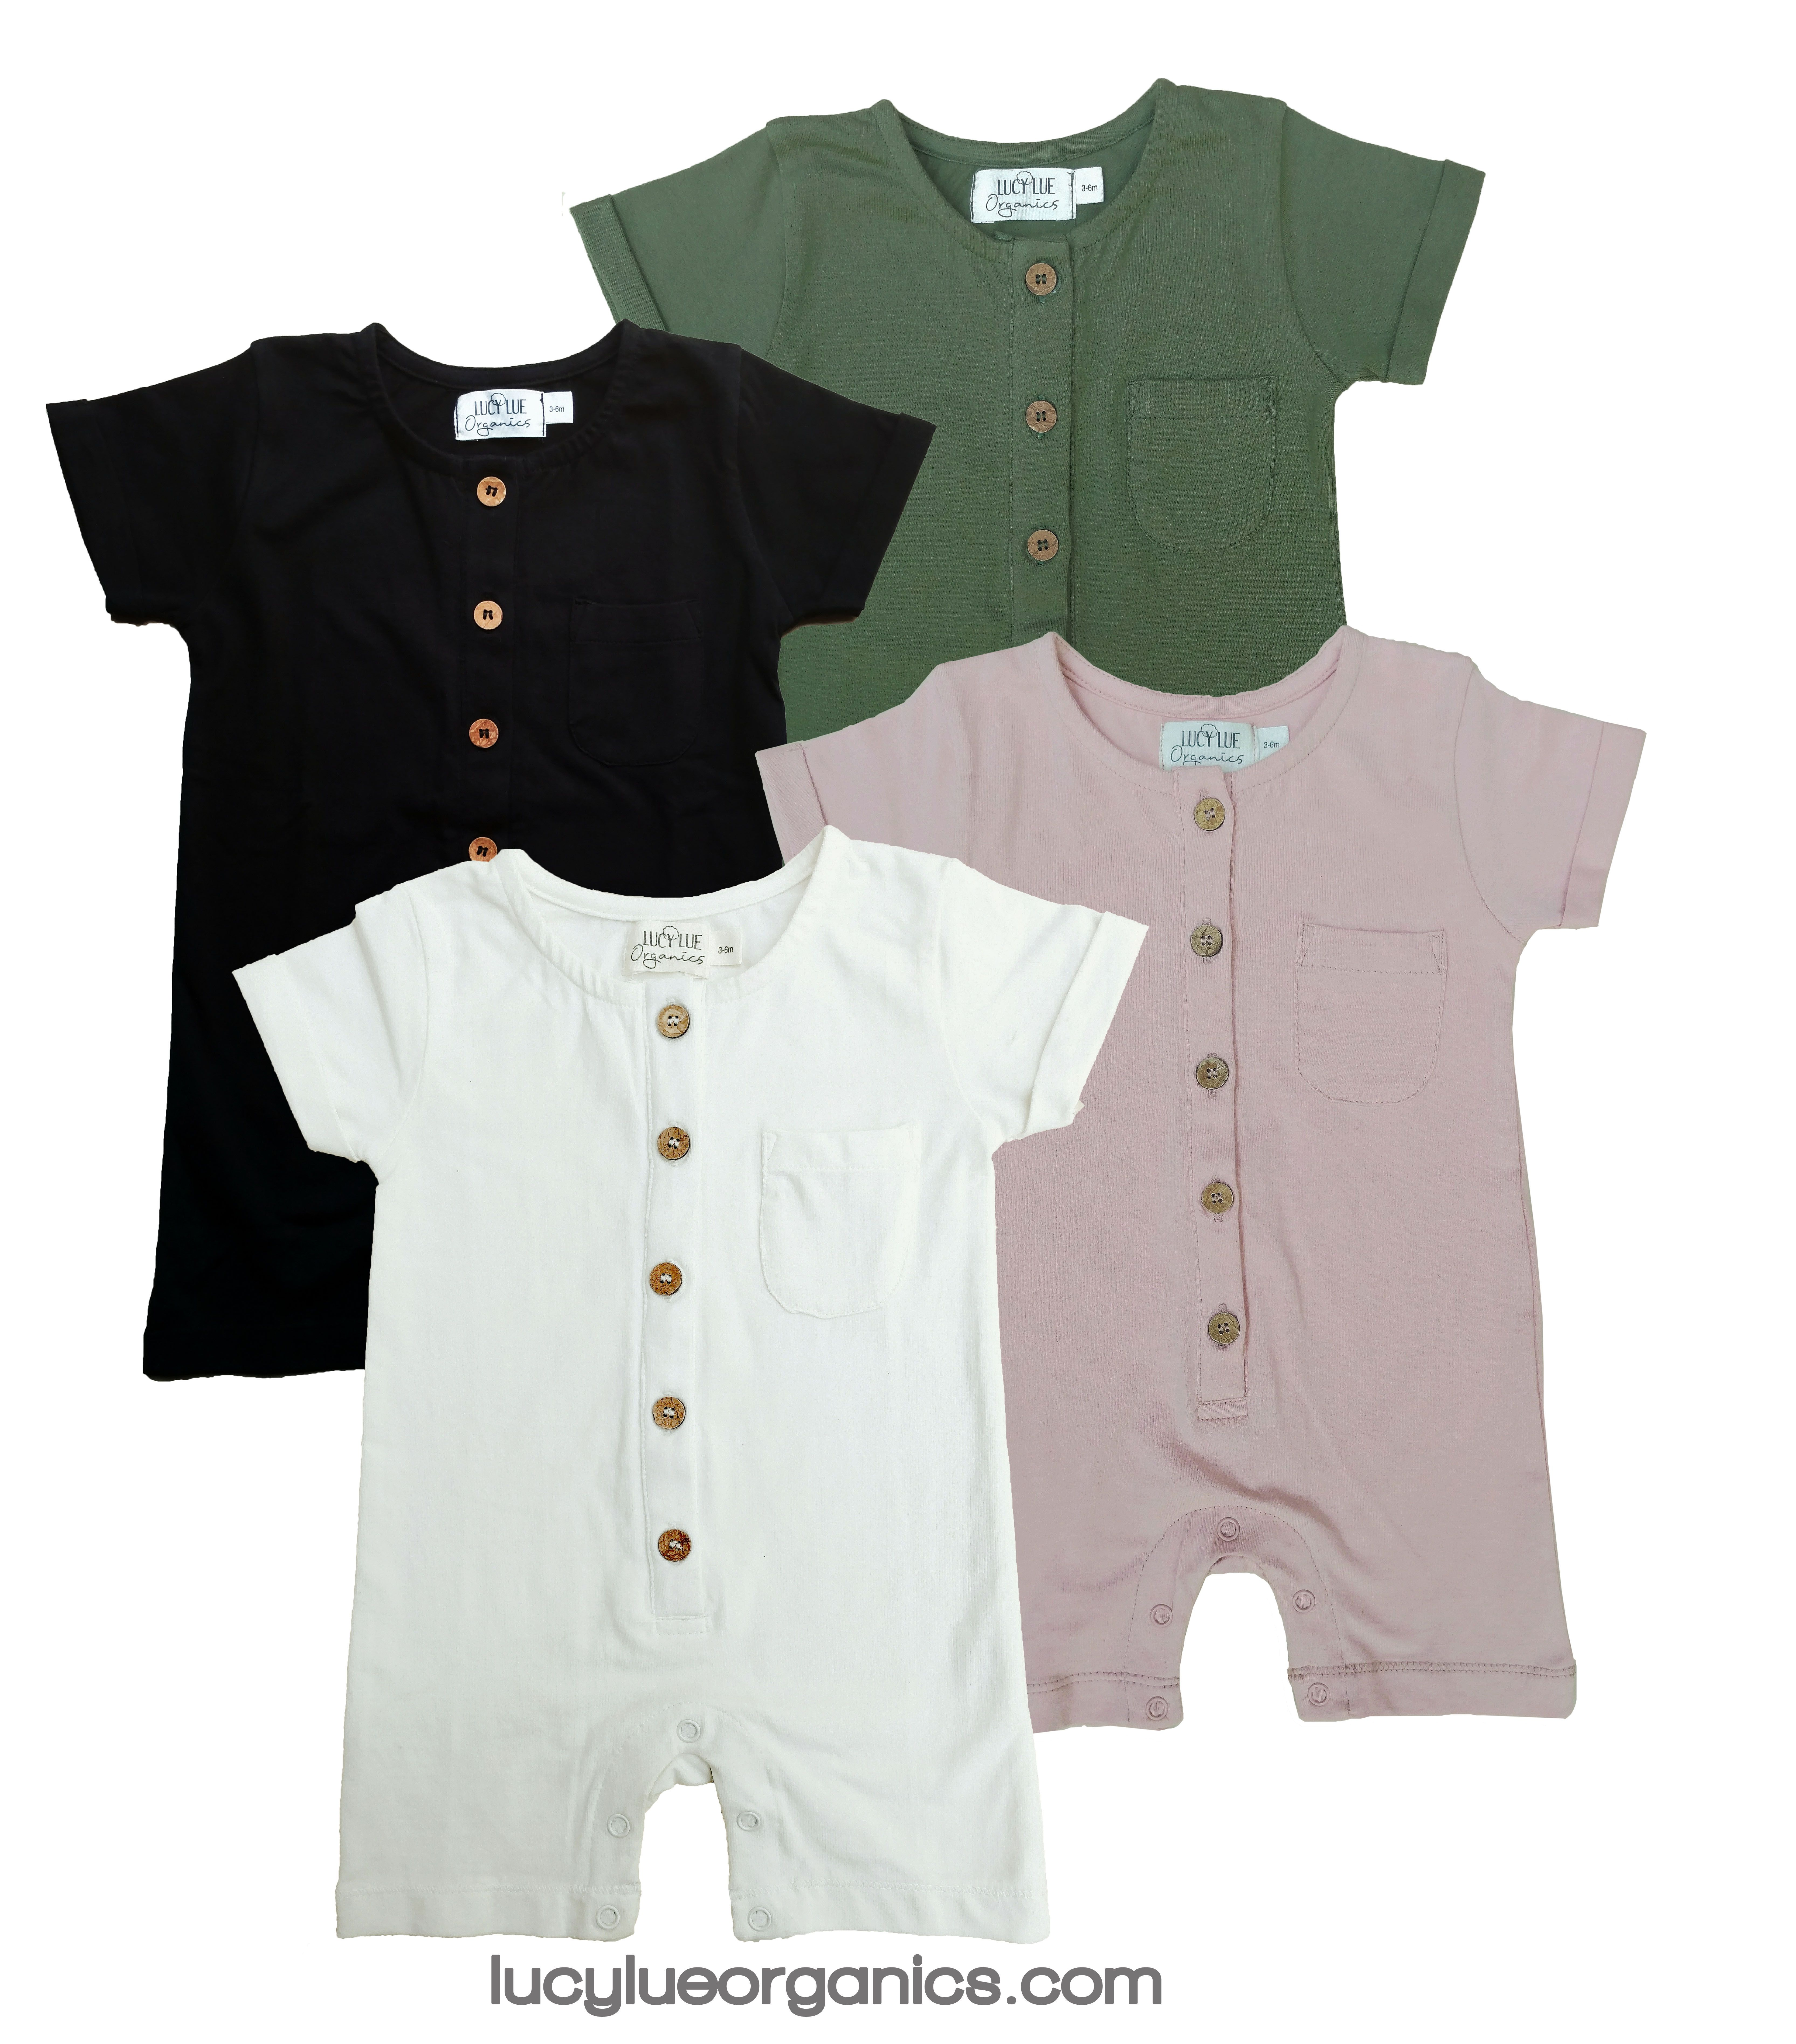 e528ef66f Organic cotton summer wear by Lucy Lue Organics. Short baby rompers.  Neutral colors. For the best in modern organic baby wear, shop  lucylueorganics.com.